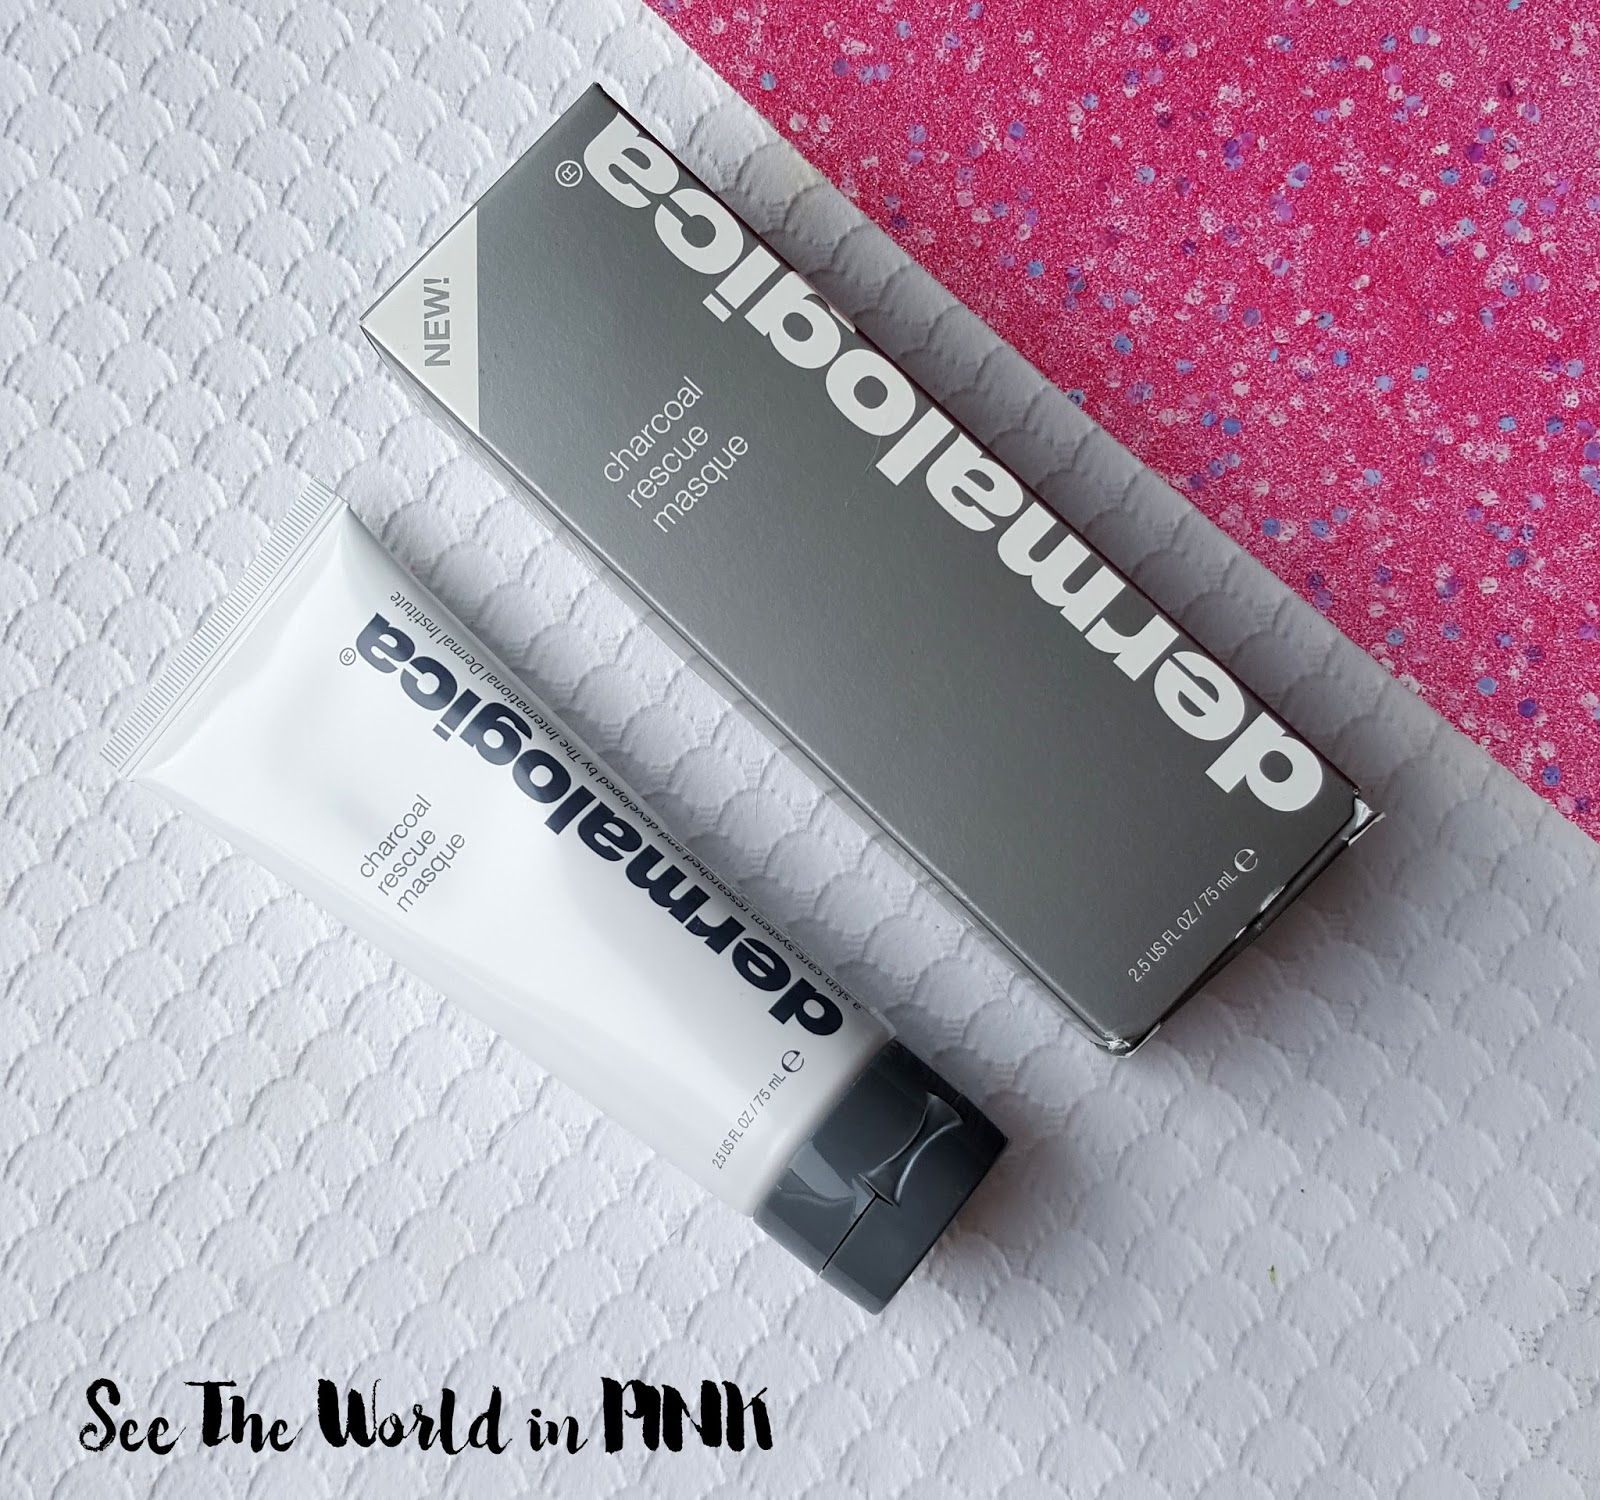 Skincare Sunday - Dermalogica Charcoal Rescue Masque Review!